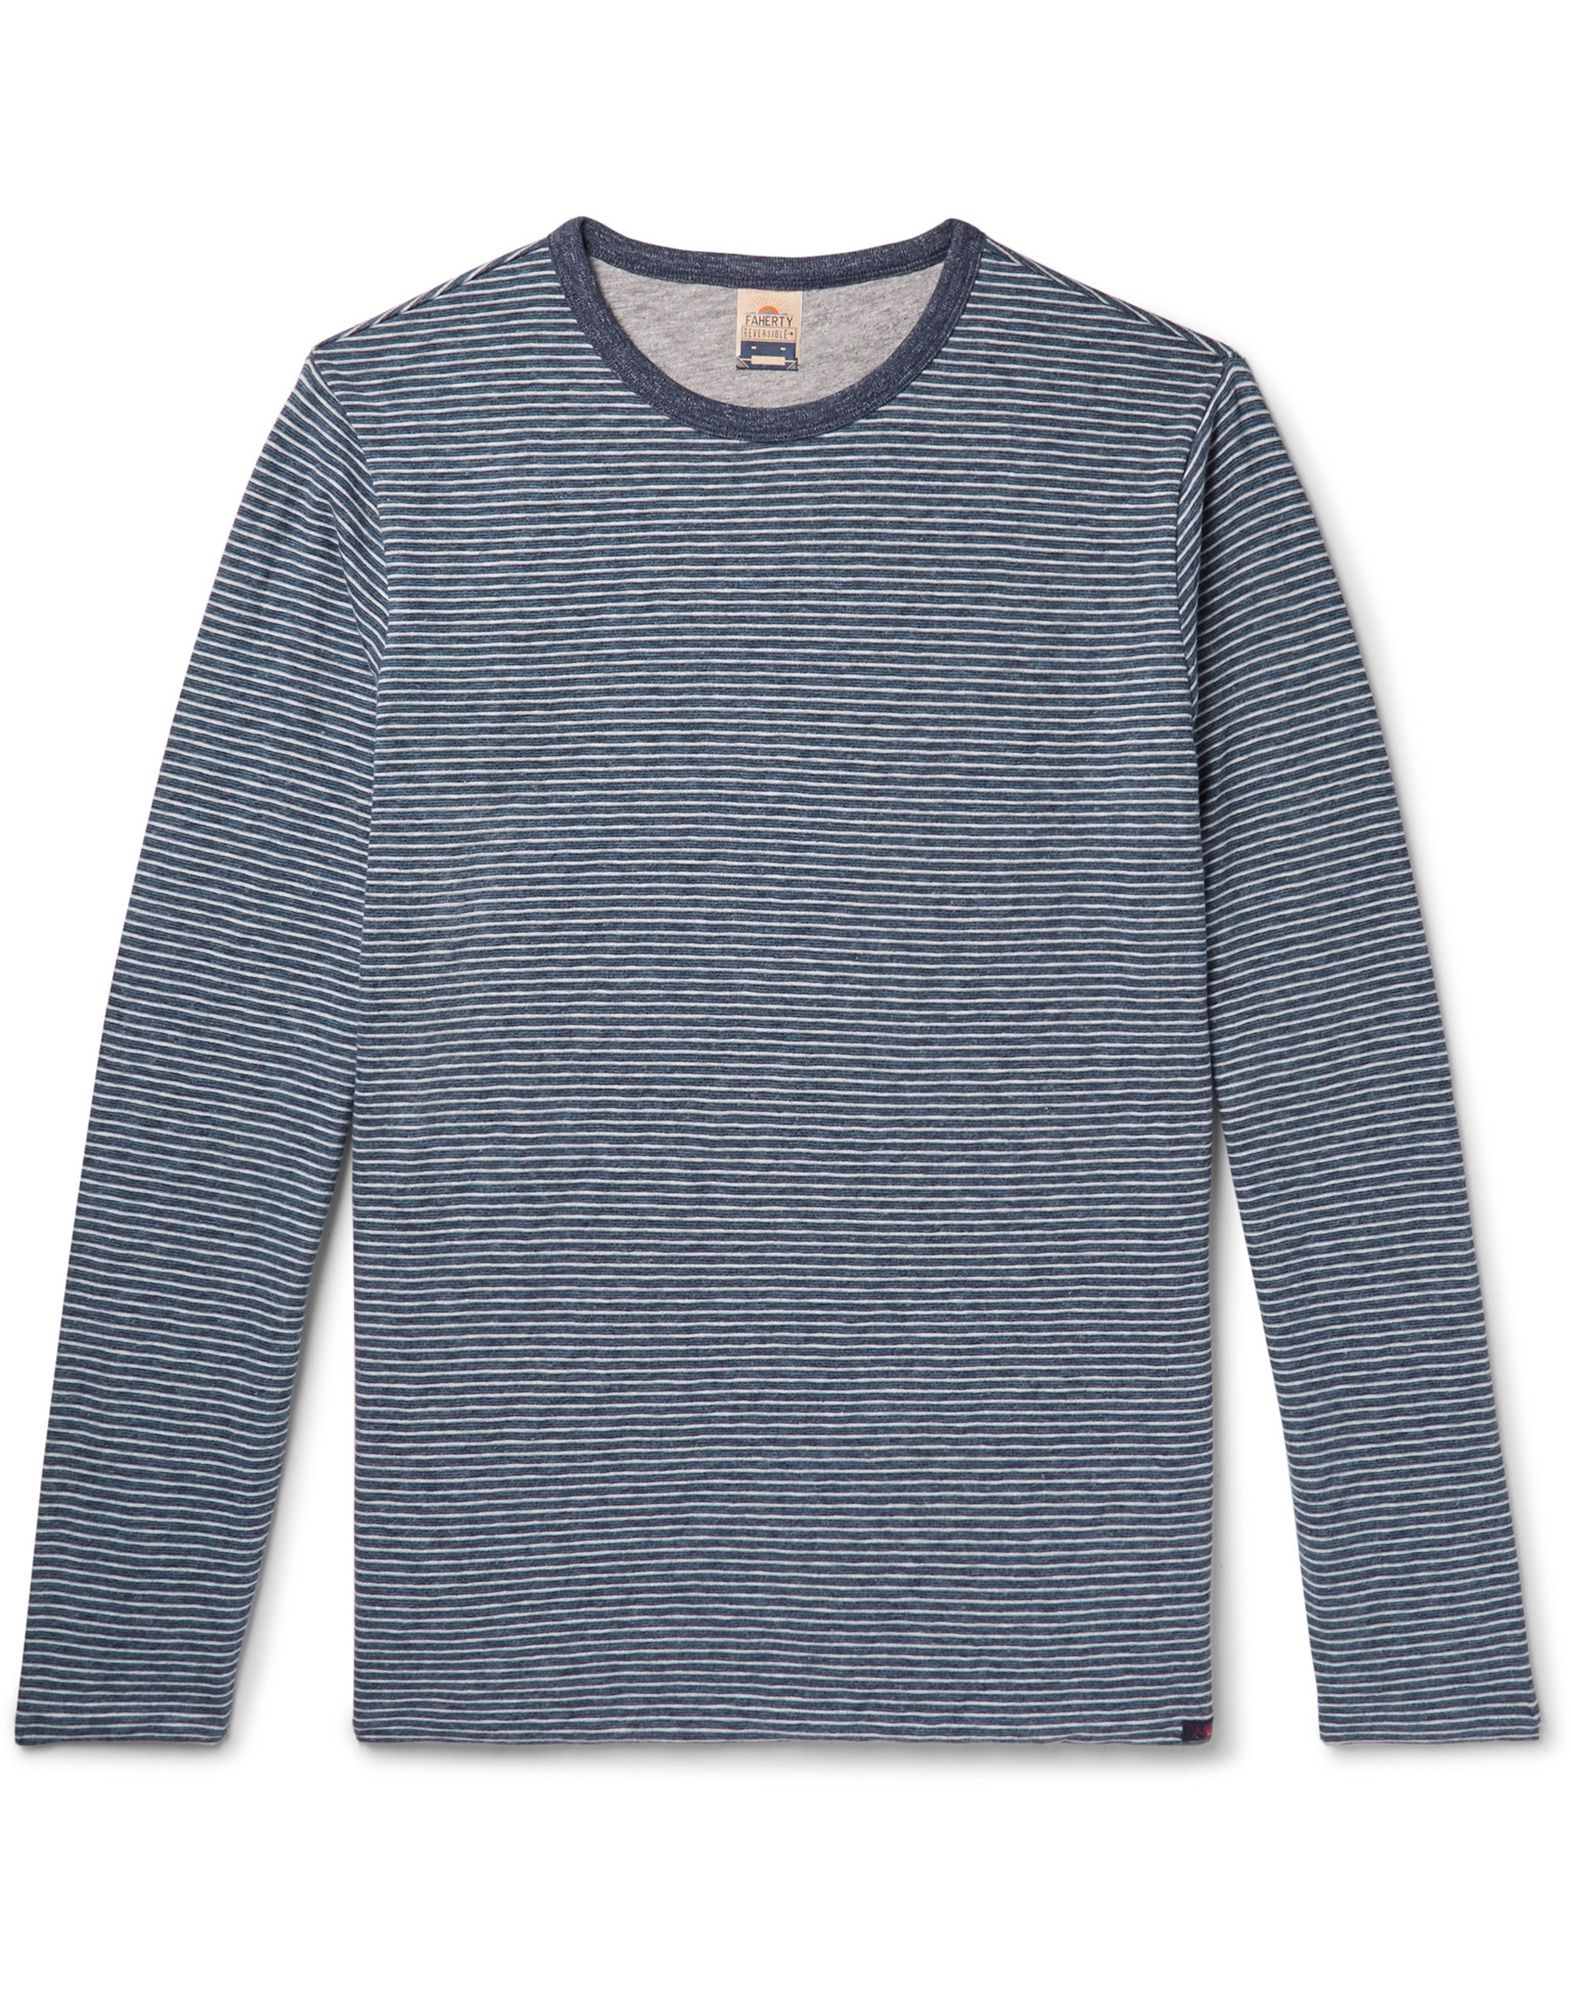 FAHERTY Sweaters. knitted, logo, stripes, round collar, lightweight sweater, long sleeves, no pockets. 80% Organic cotton, 20% Polyester